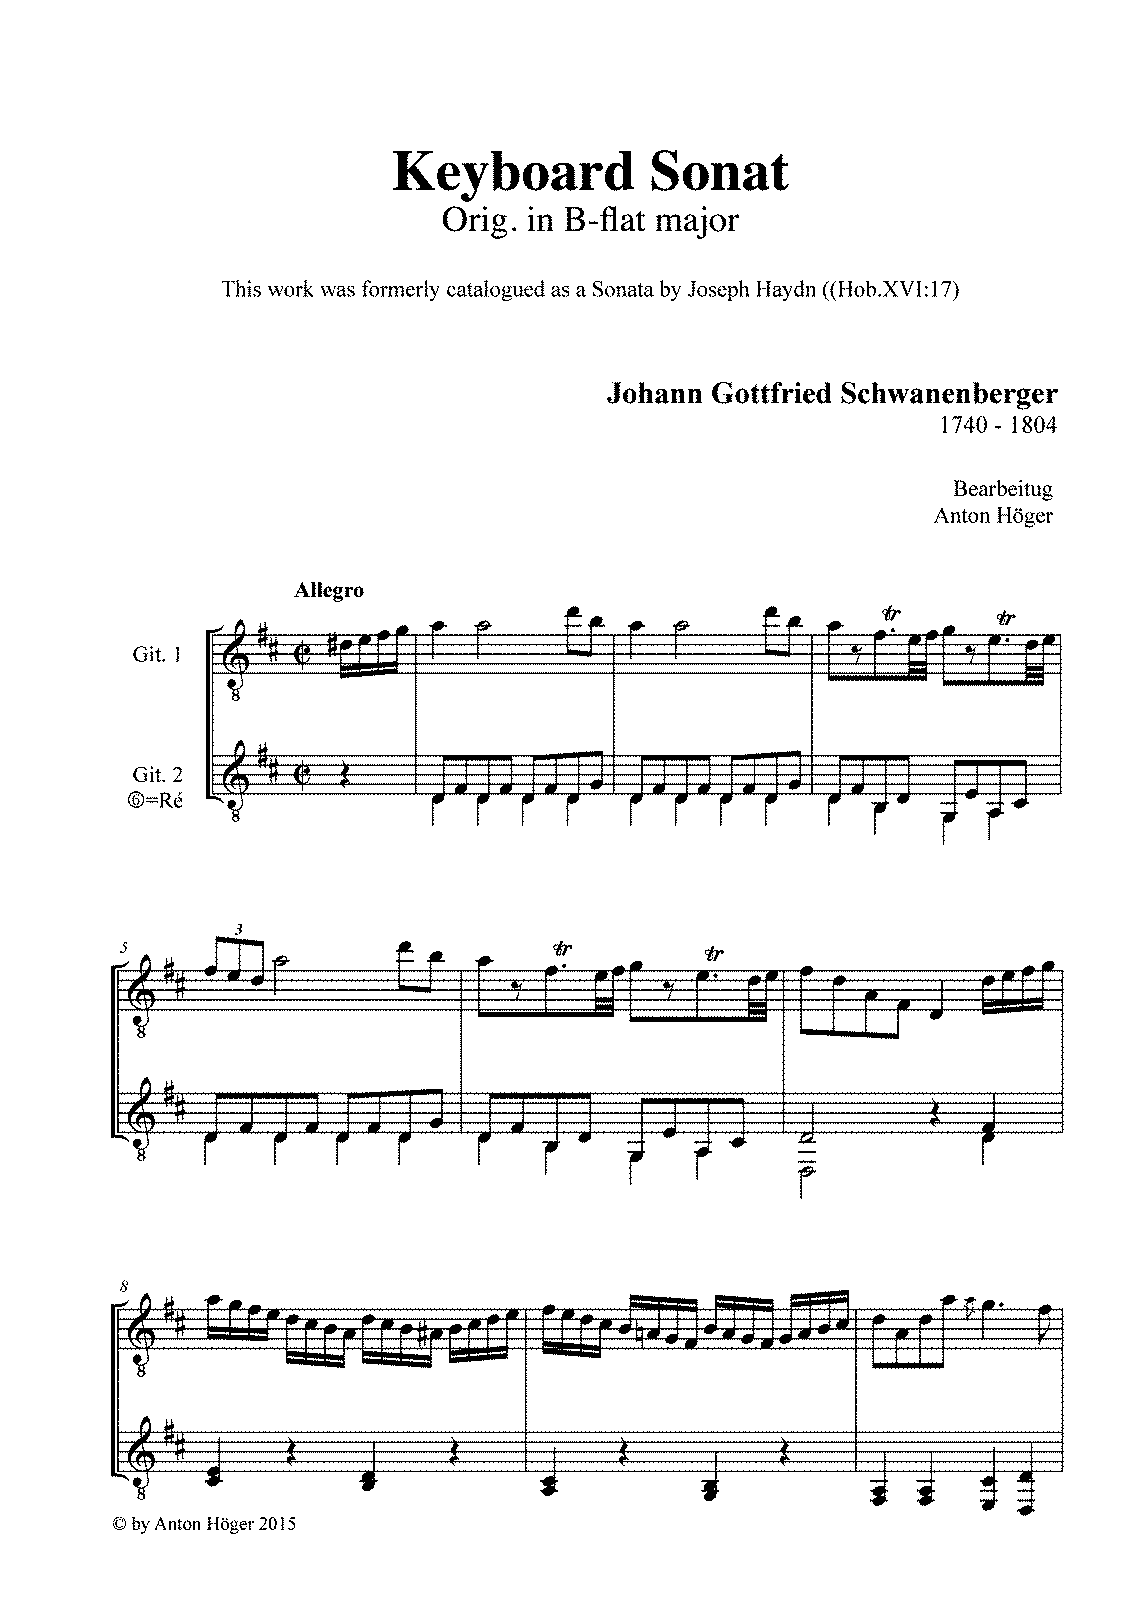 PMLP01673-Schwanenberger, Johann Gottfried - Keyboard Sonata in B-flat major.pdf